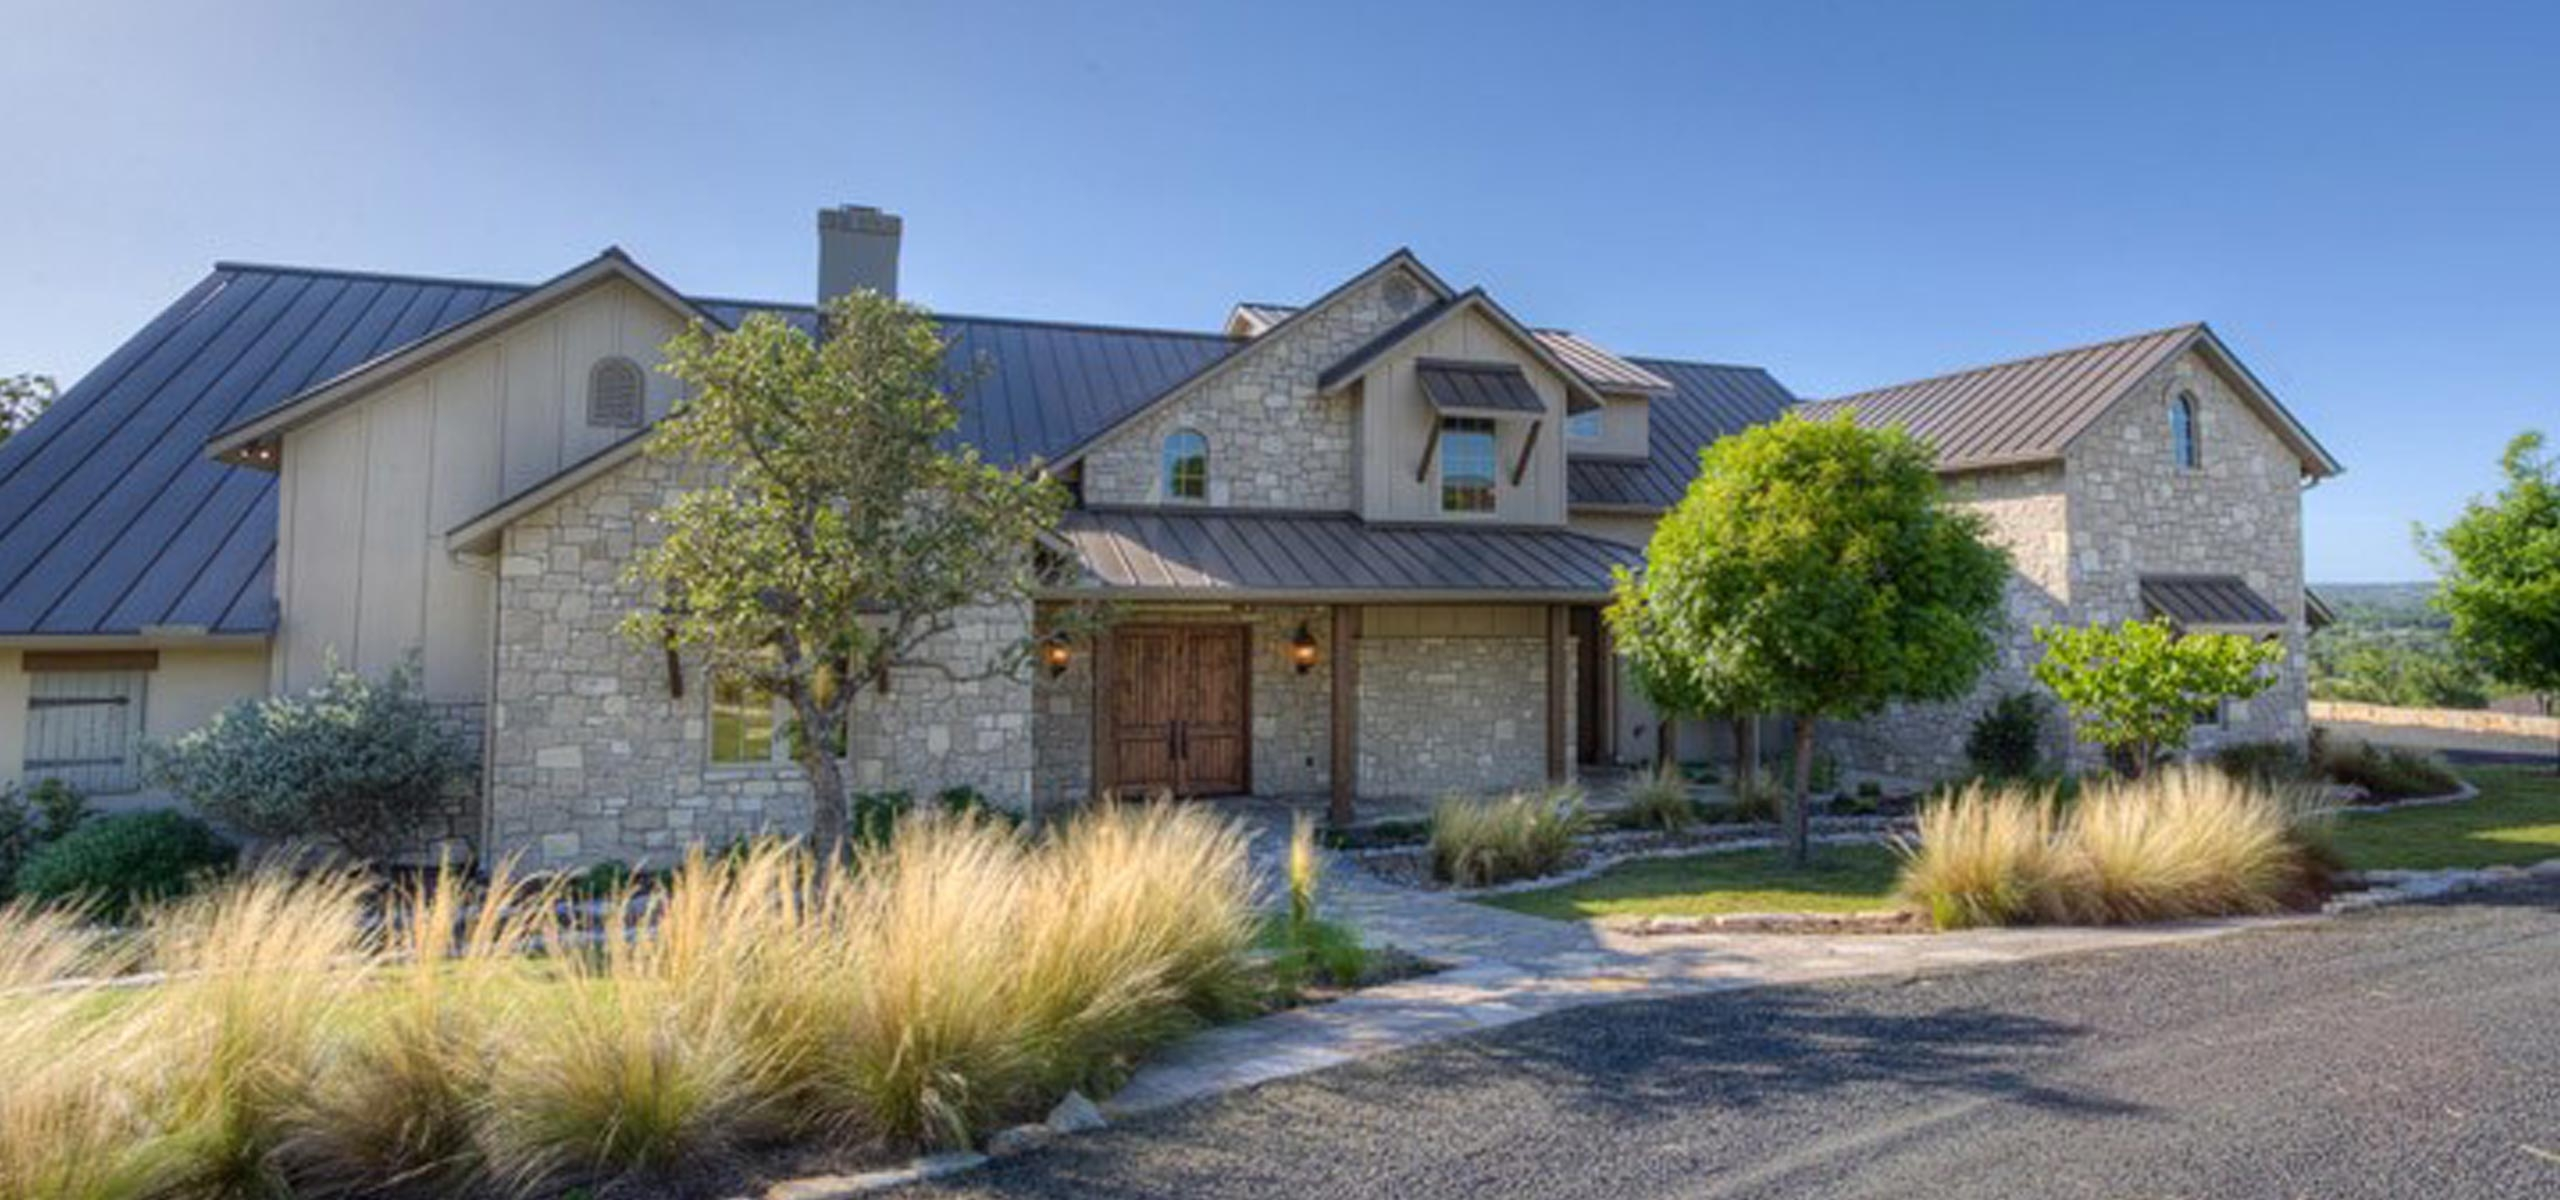 100 Texas Farmhouse Homes Farmhouse Beauty Circa